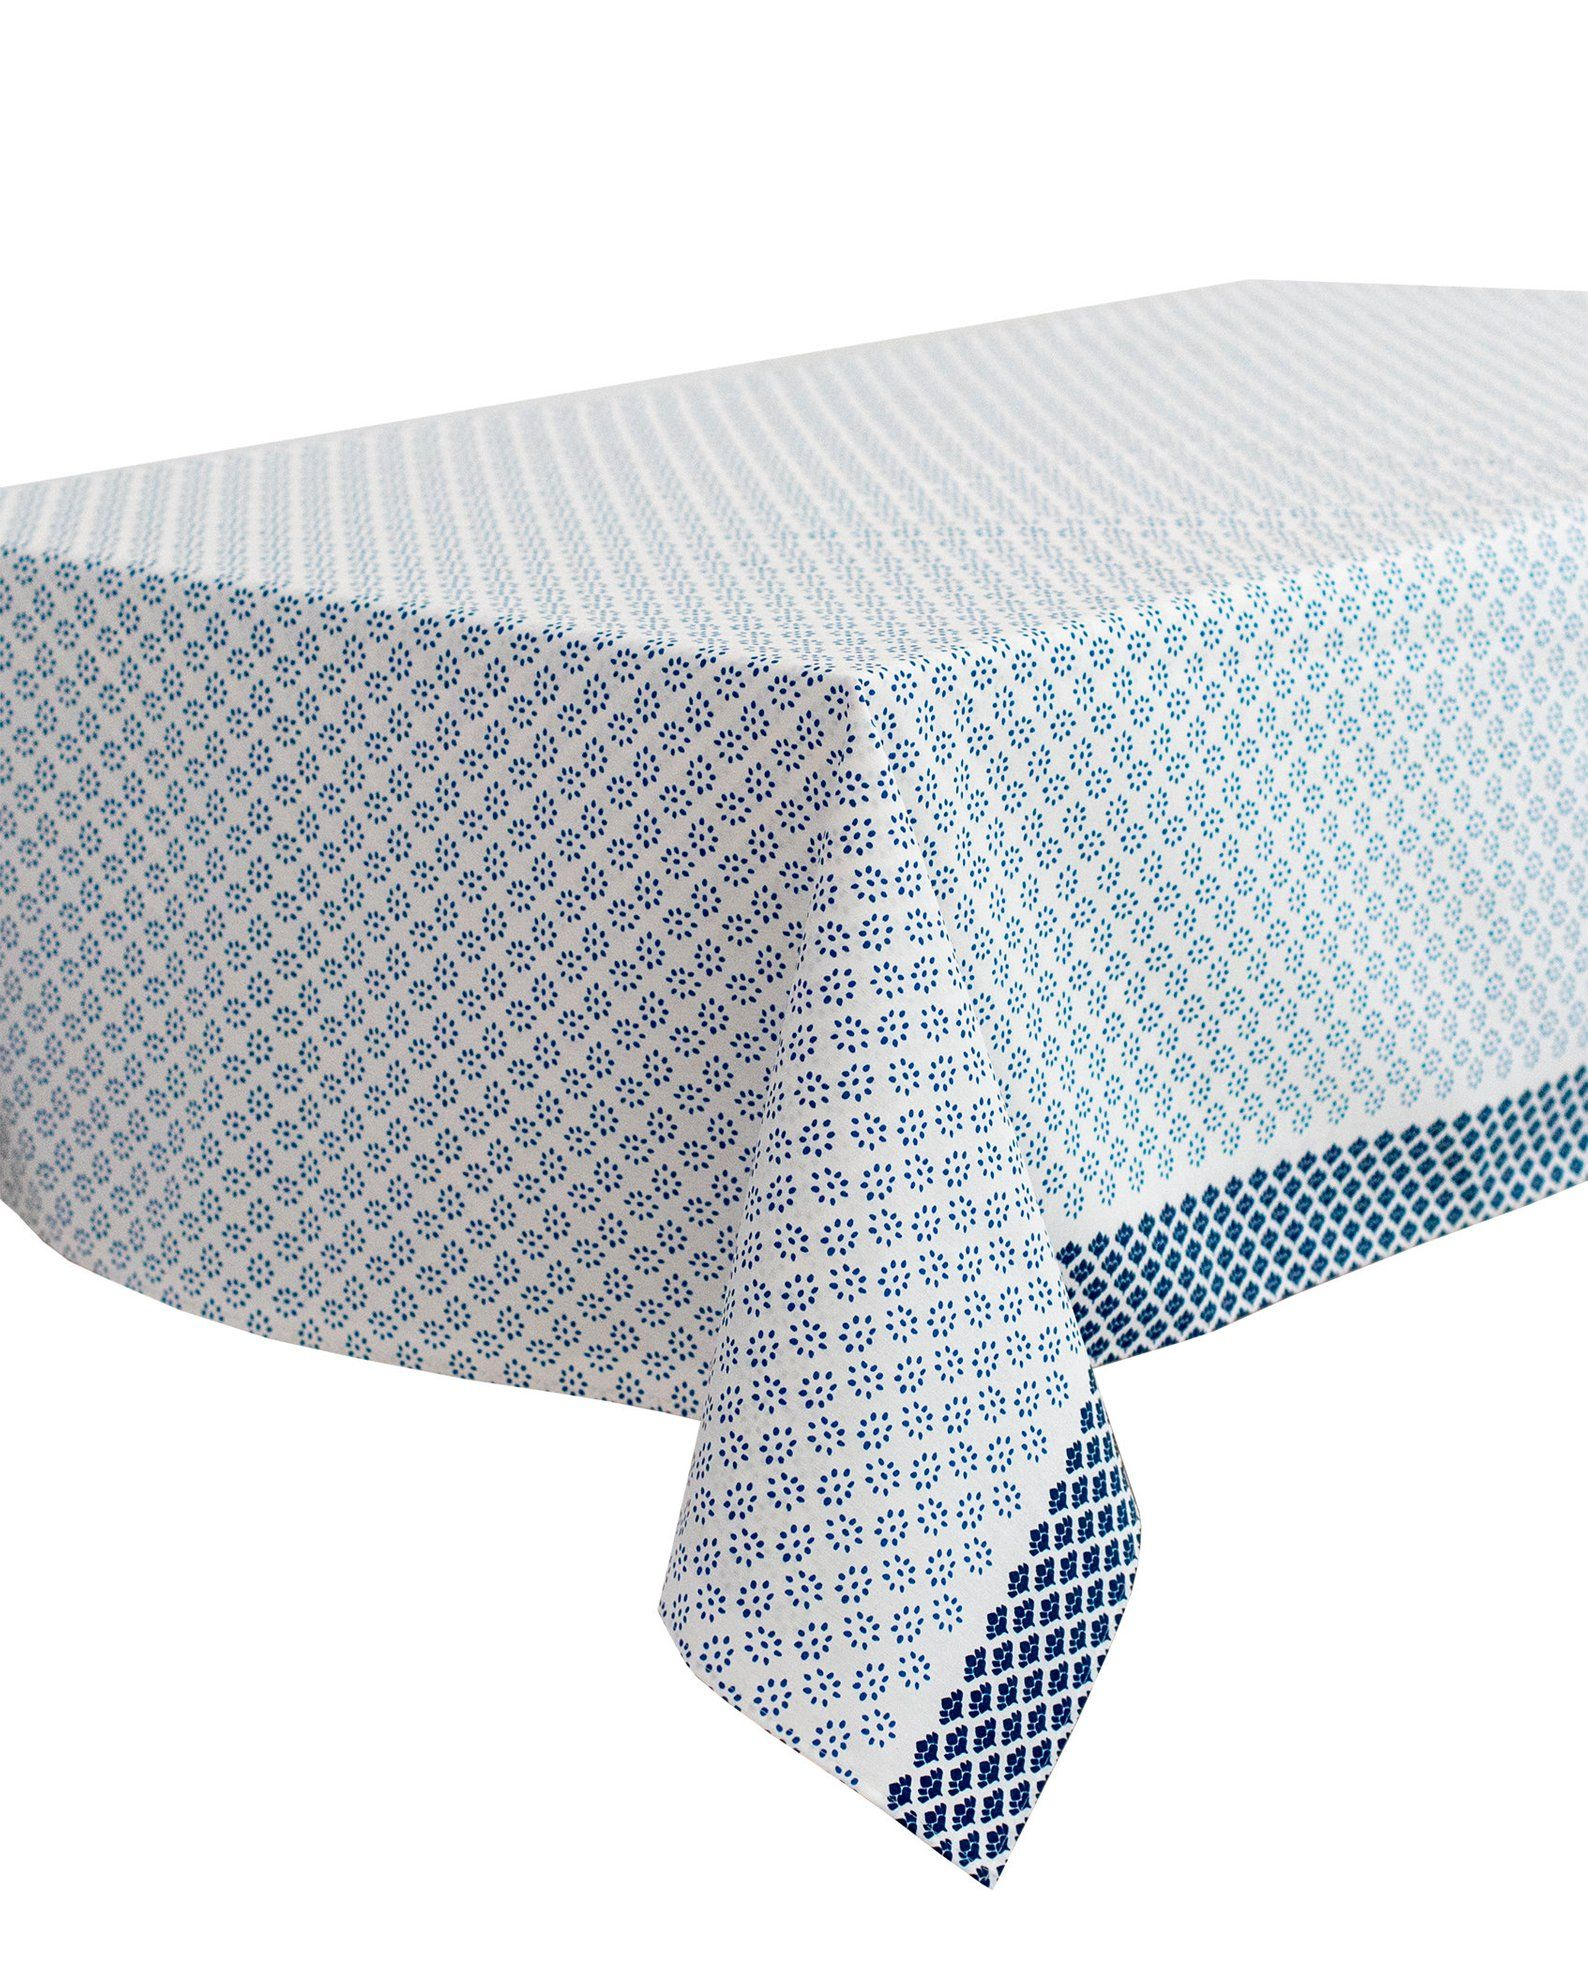 New Grimaud Blue Elegant French Rectangle Coated Tablecloths